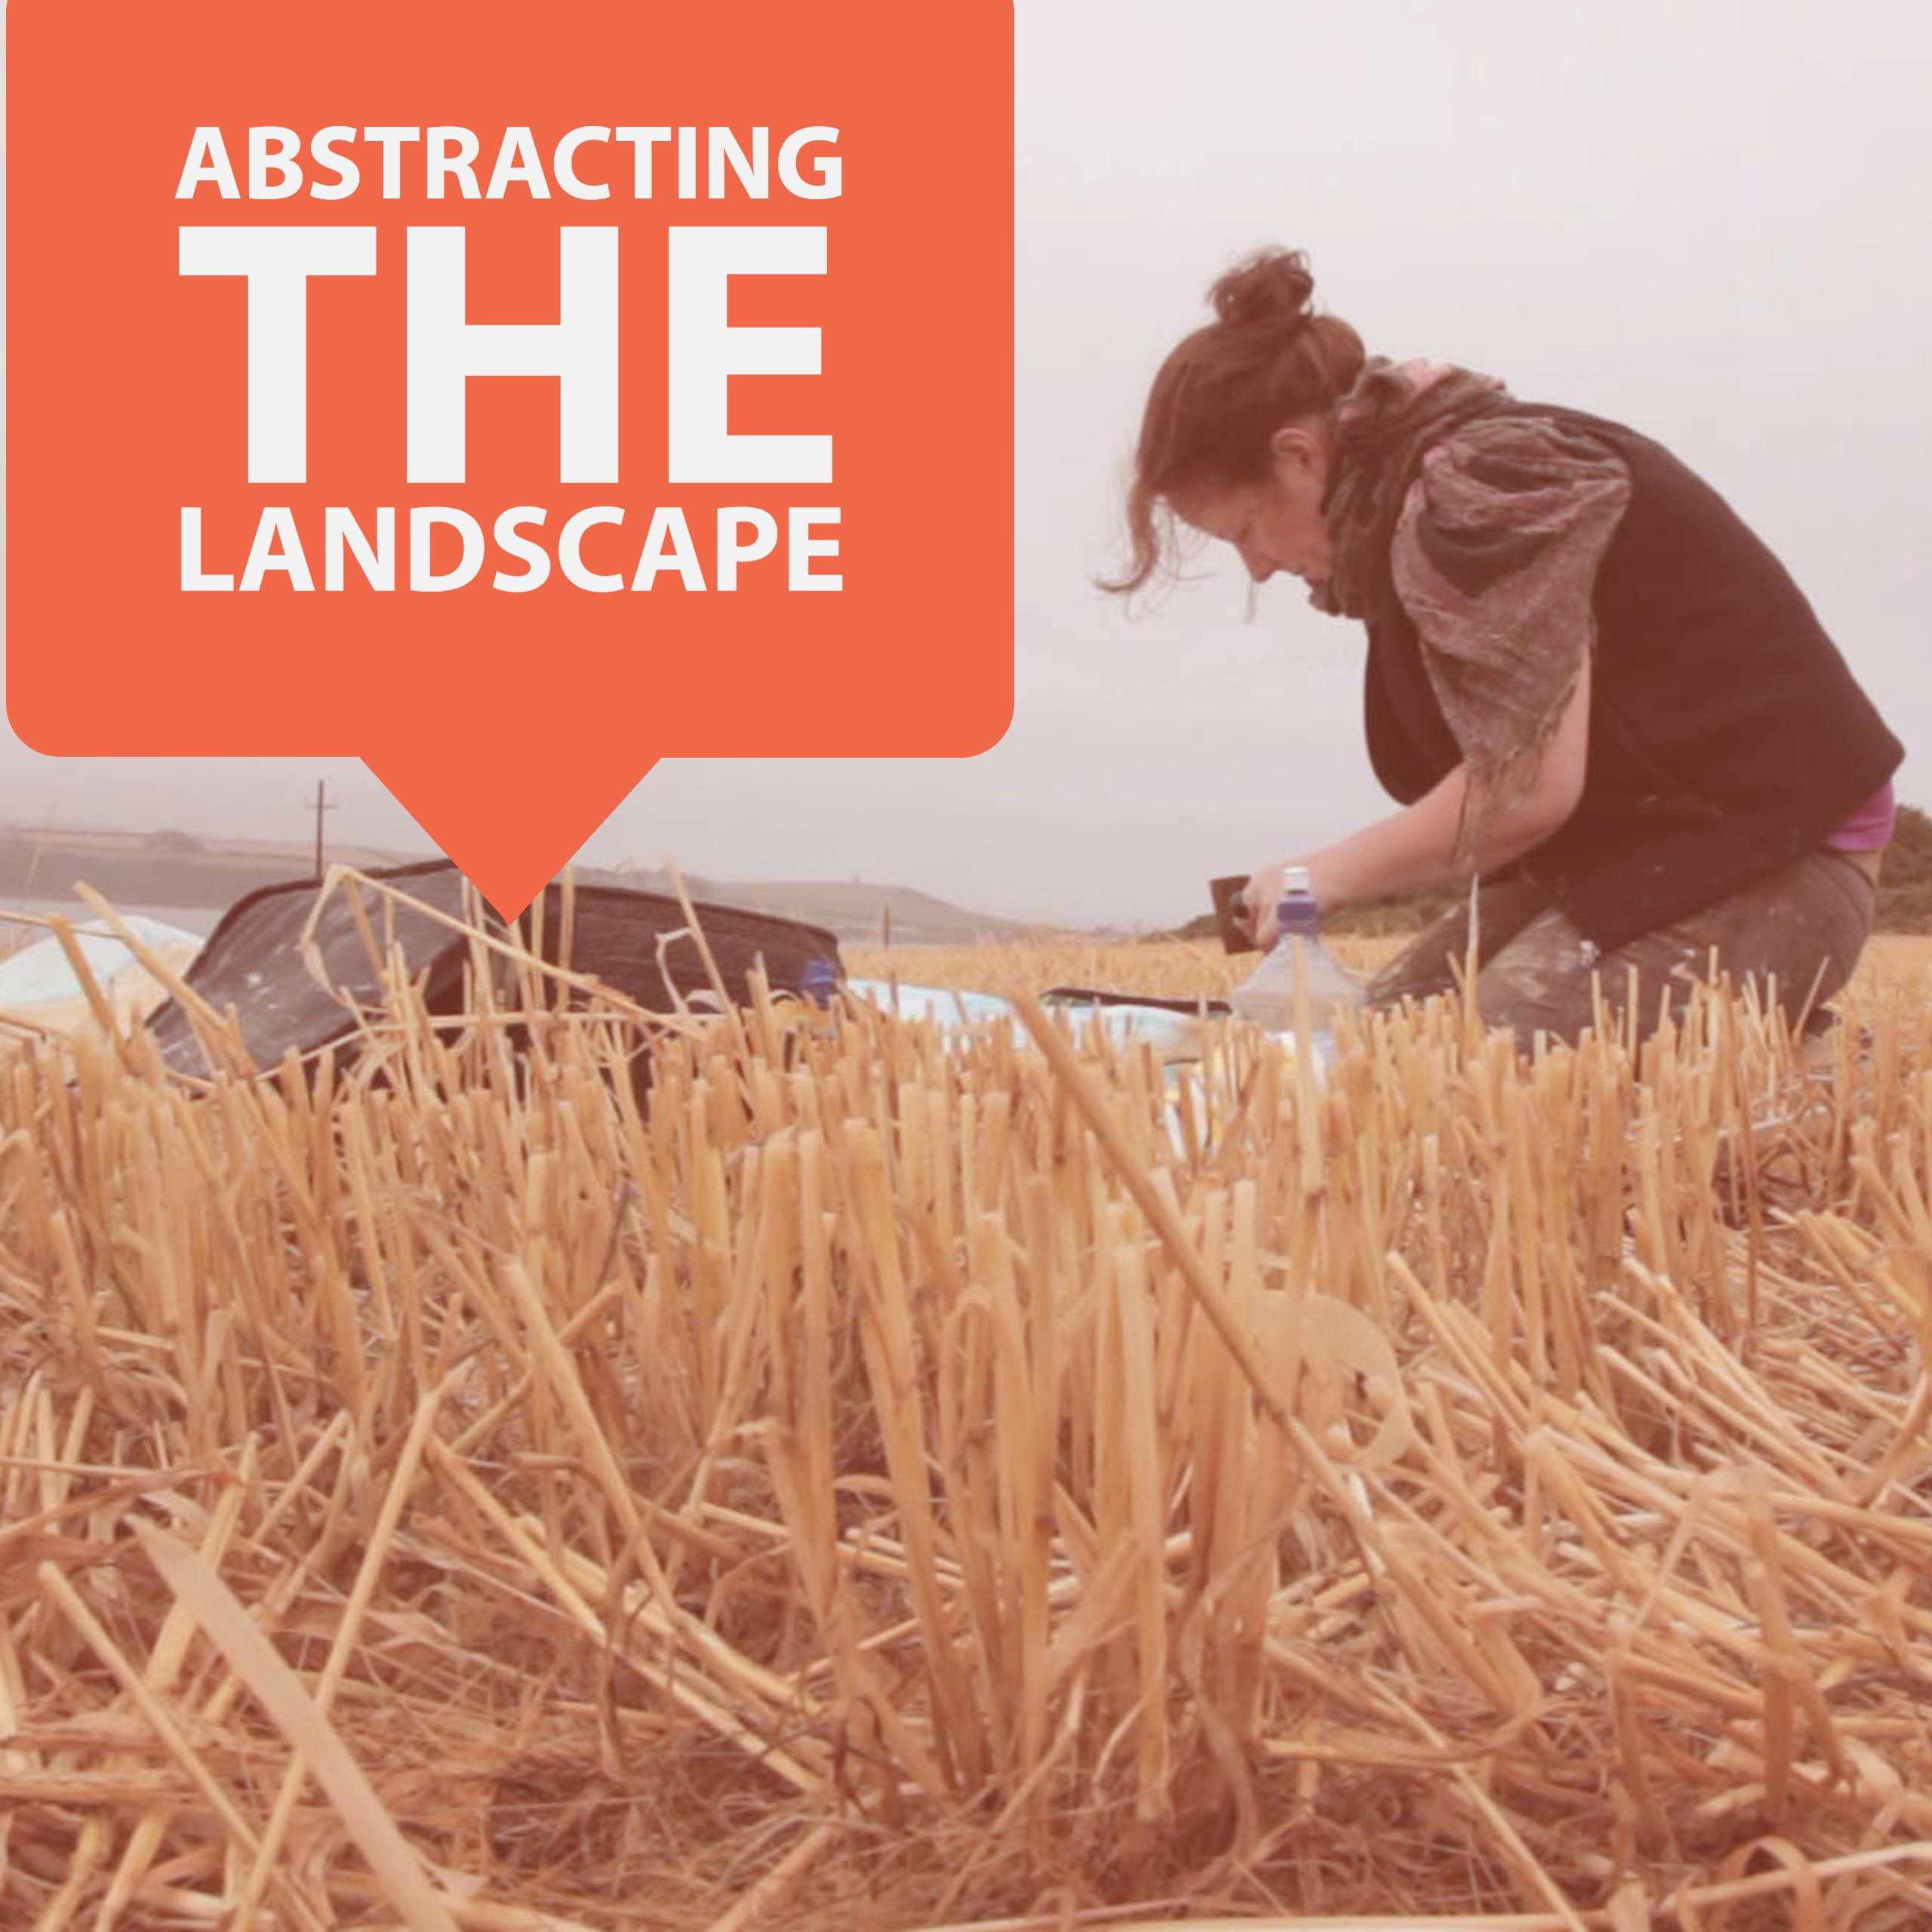 Abstracting the Landscape, 4th - 5th April 2020, Dublin